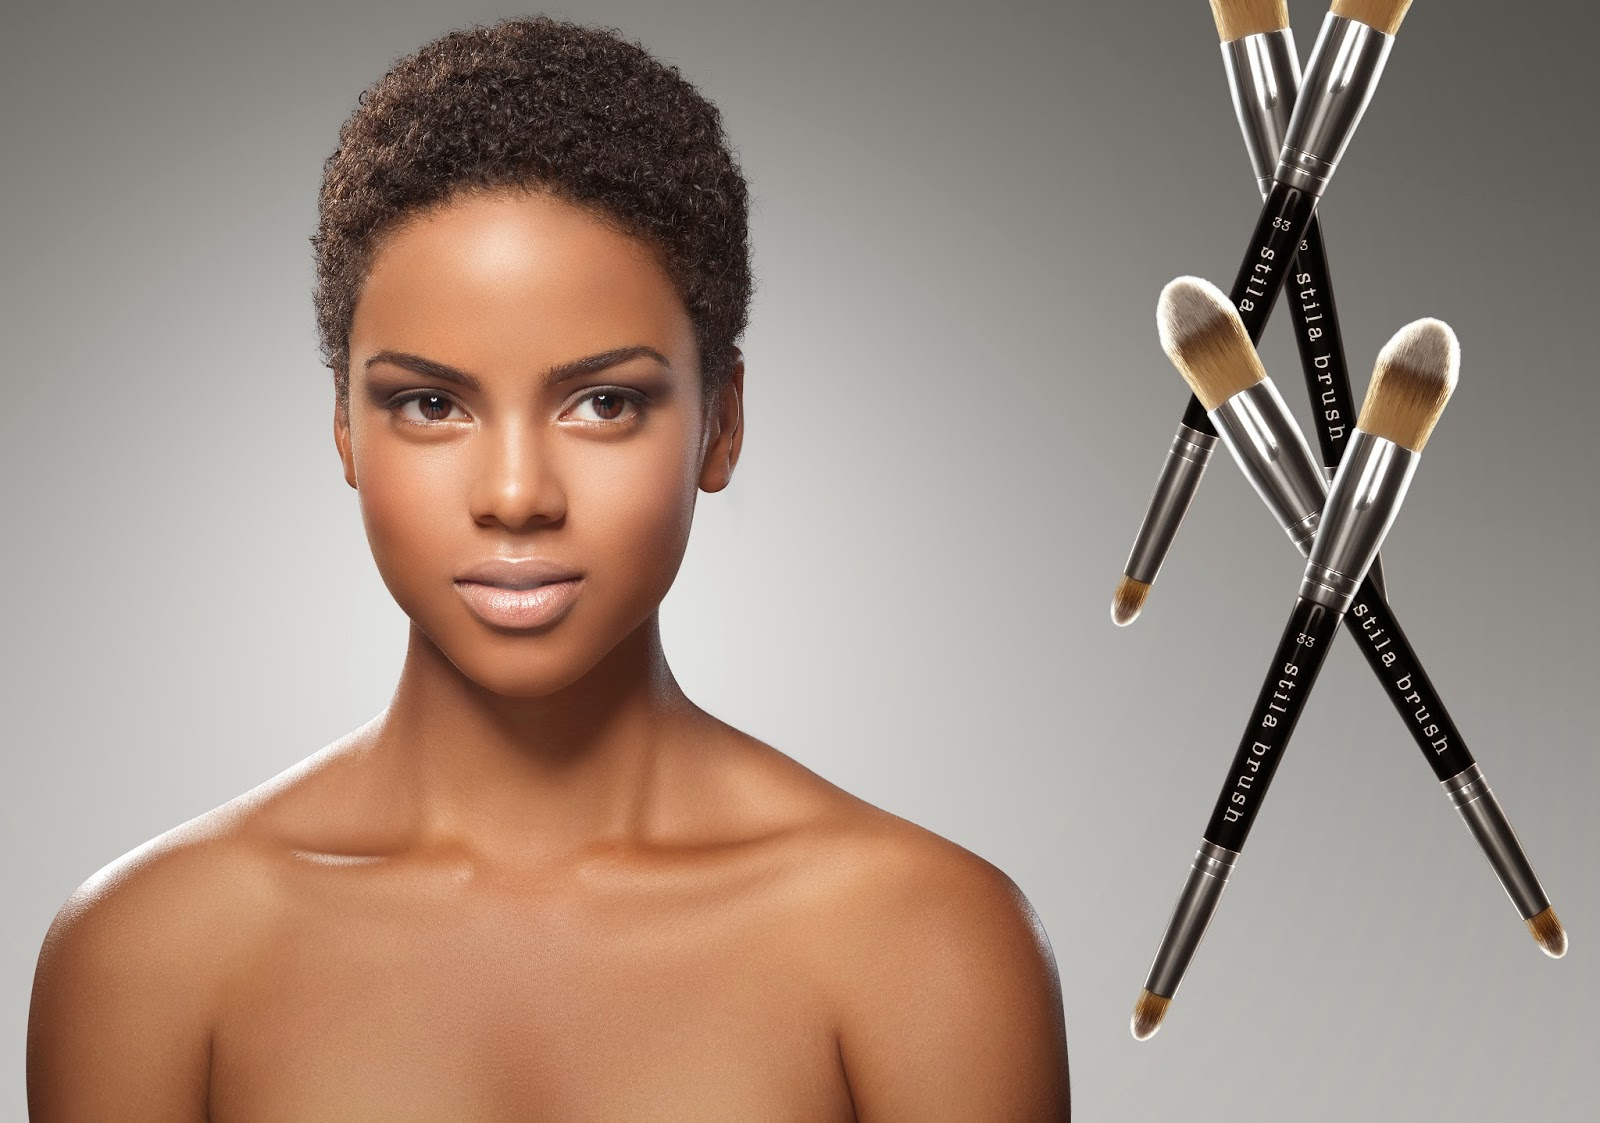 Mode models blog alicia ostrowski for e l f cosmetics by johnathan menga for Mode model